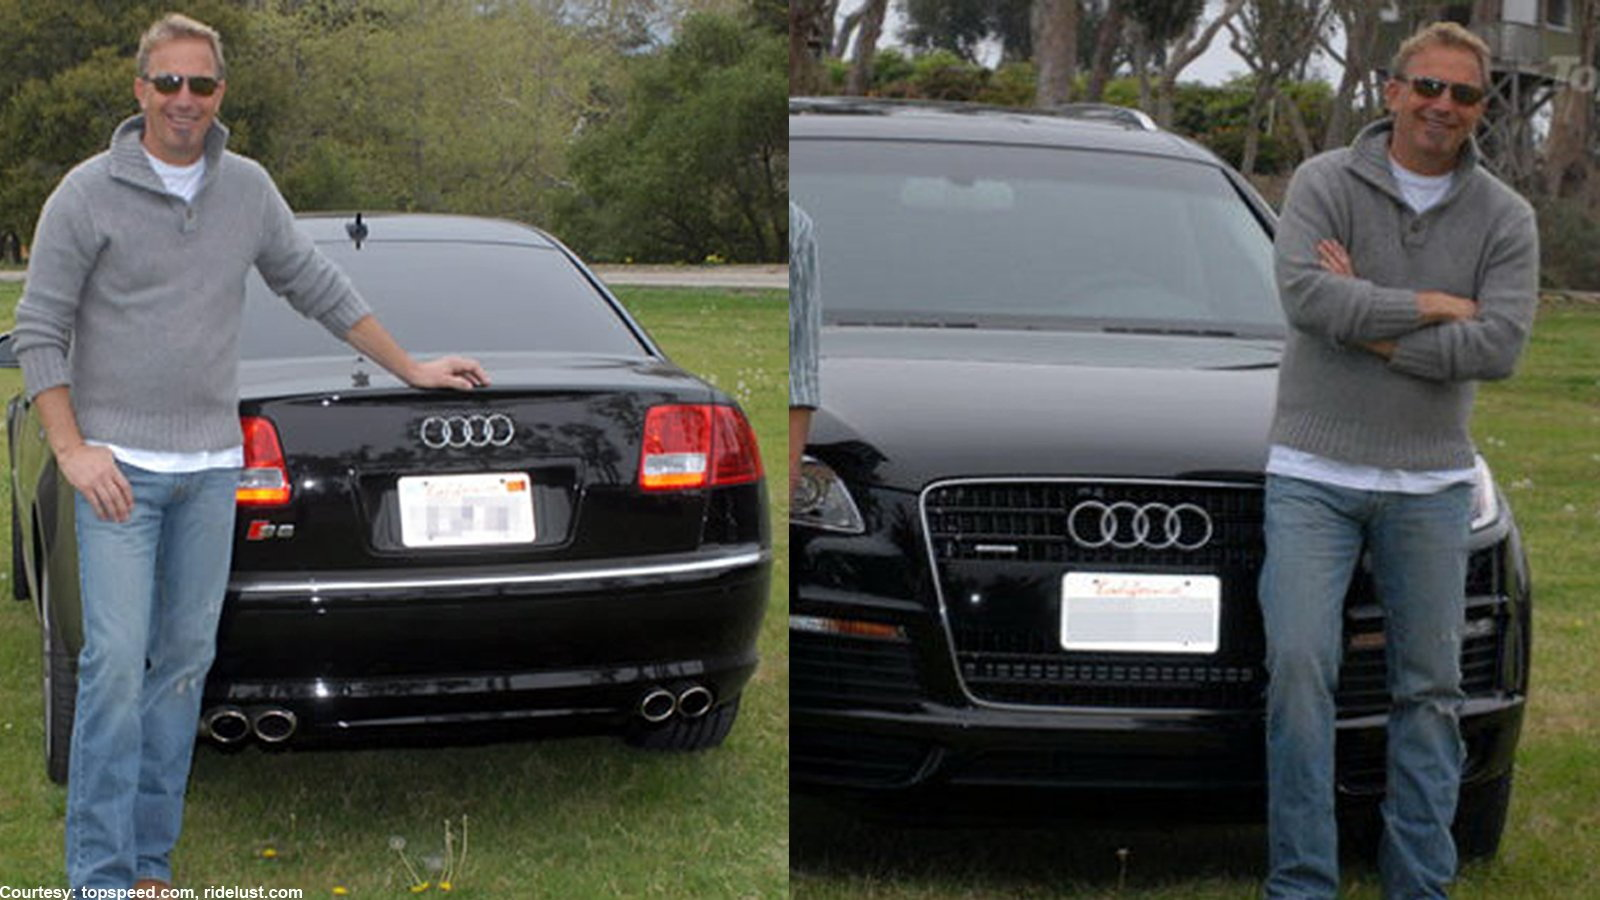 More Celebrities That Drive Audi